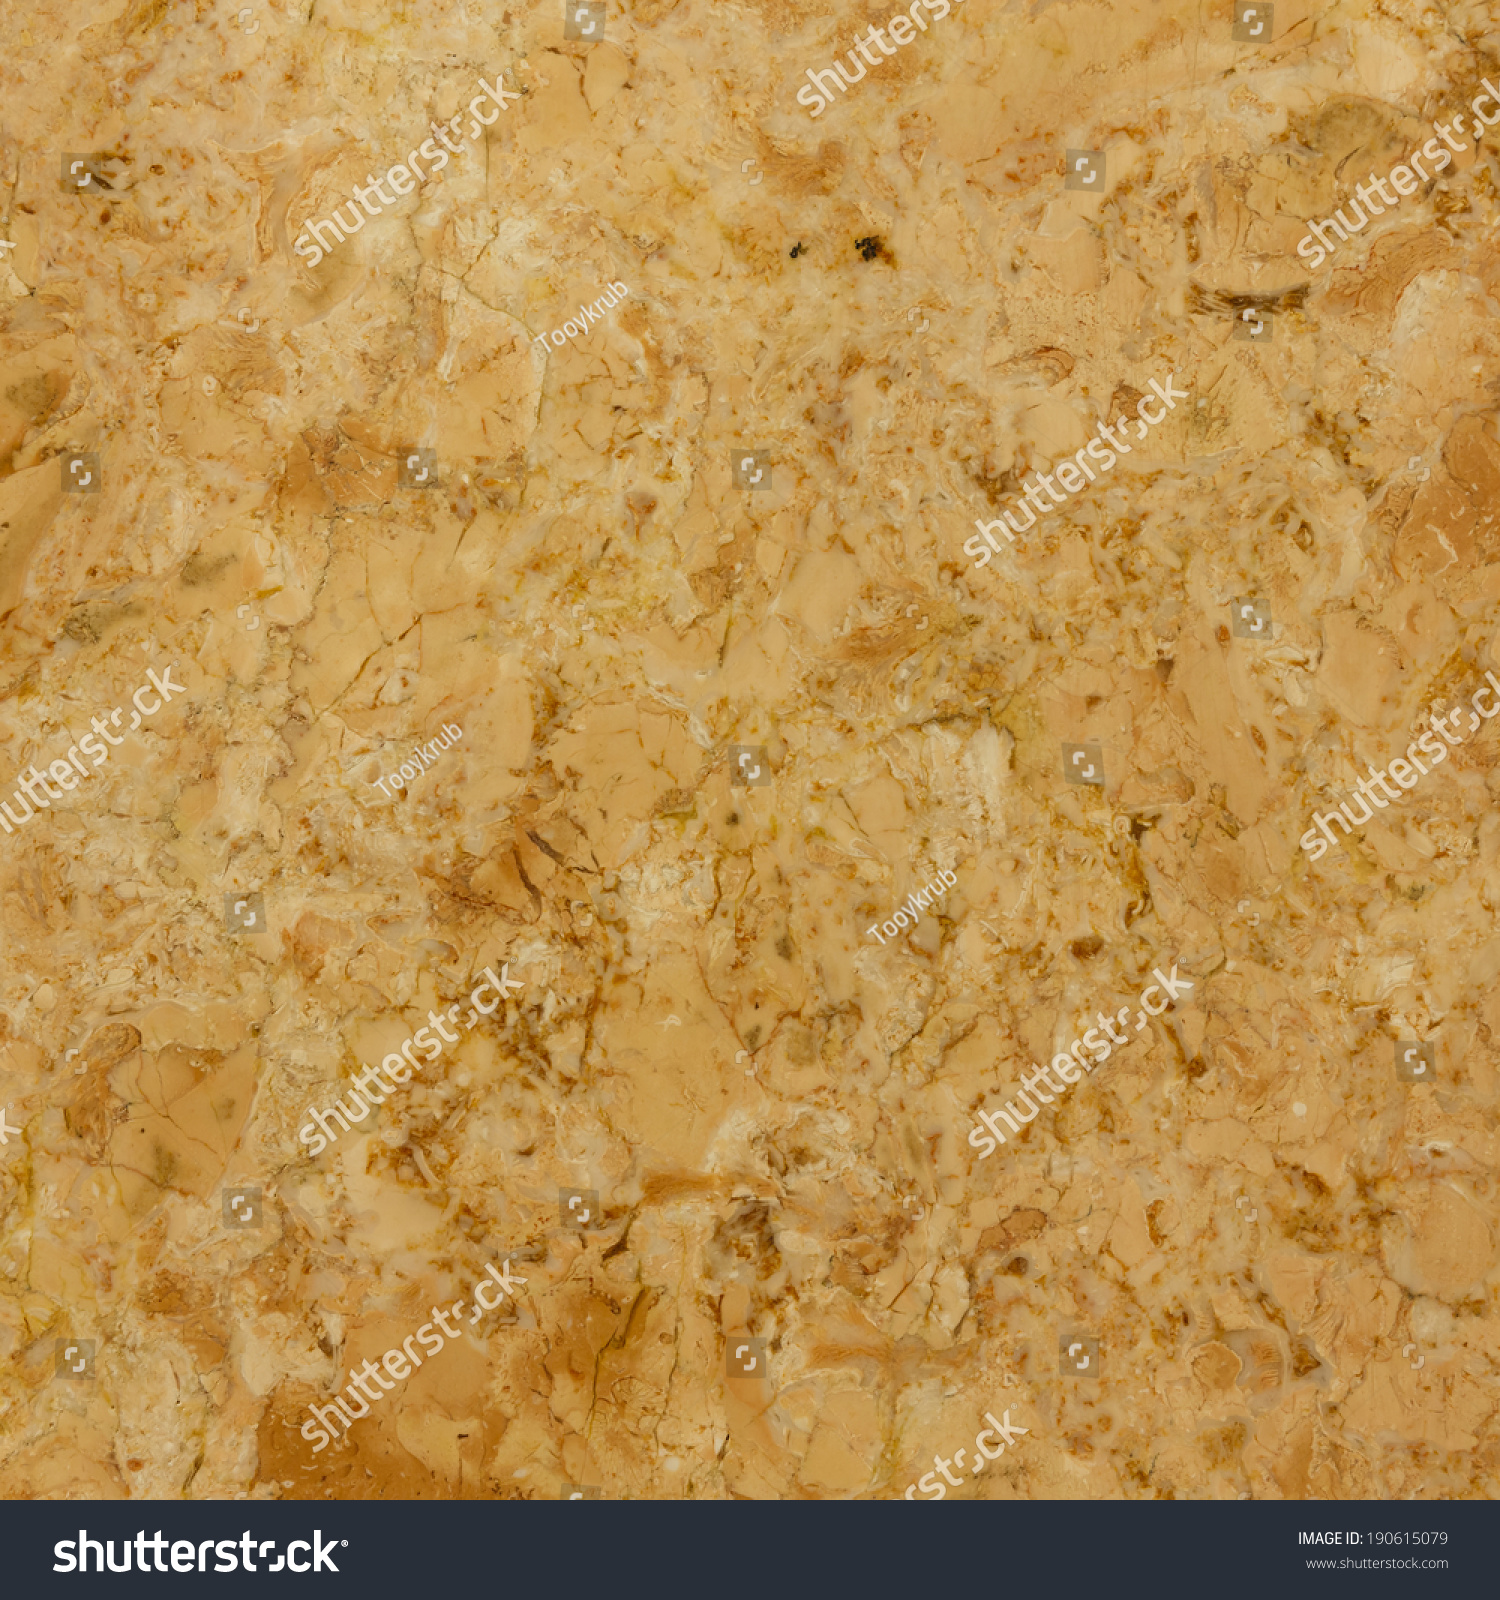 Light Brown Granite : Seamless light brown granite texture stock photo